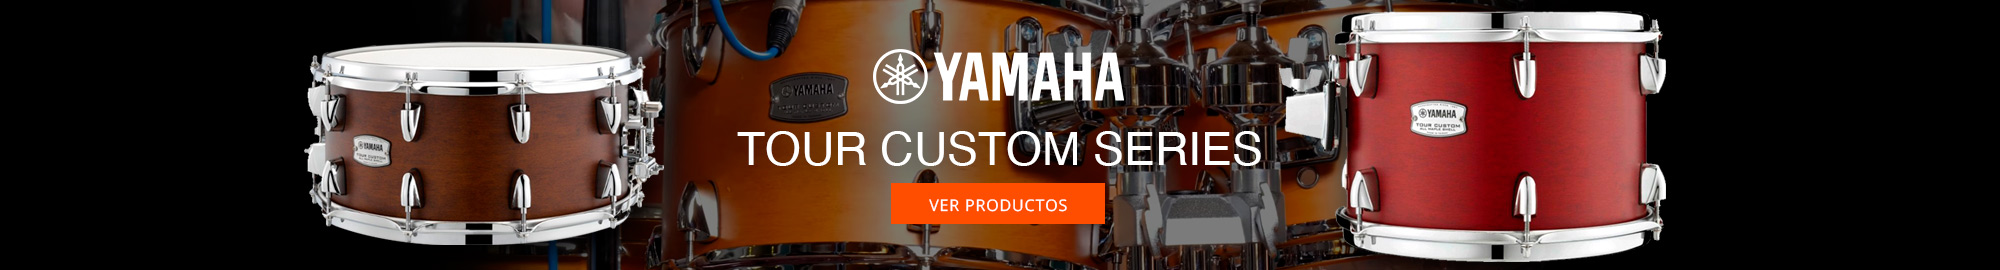 Yamaha Tour Custom Series